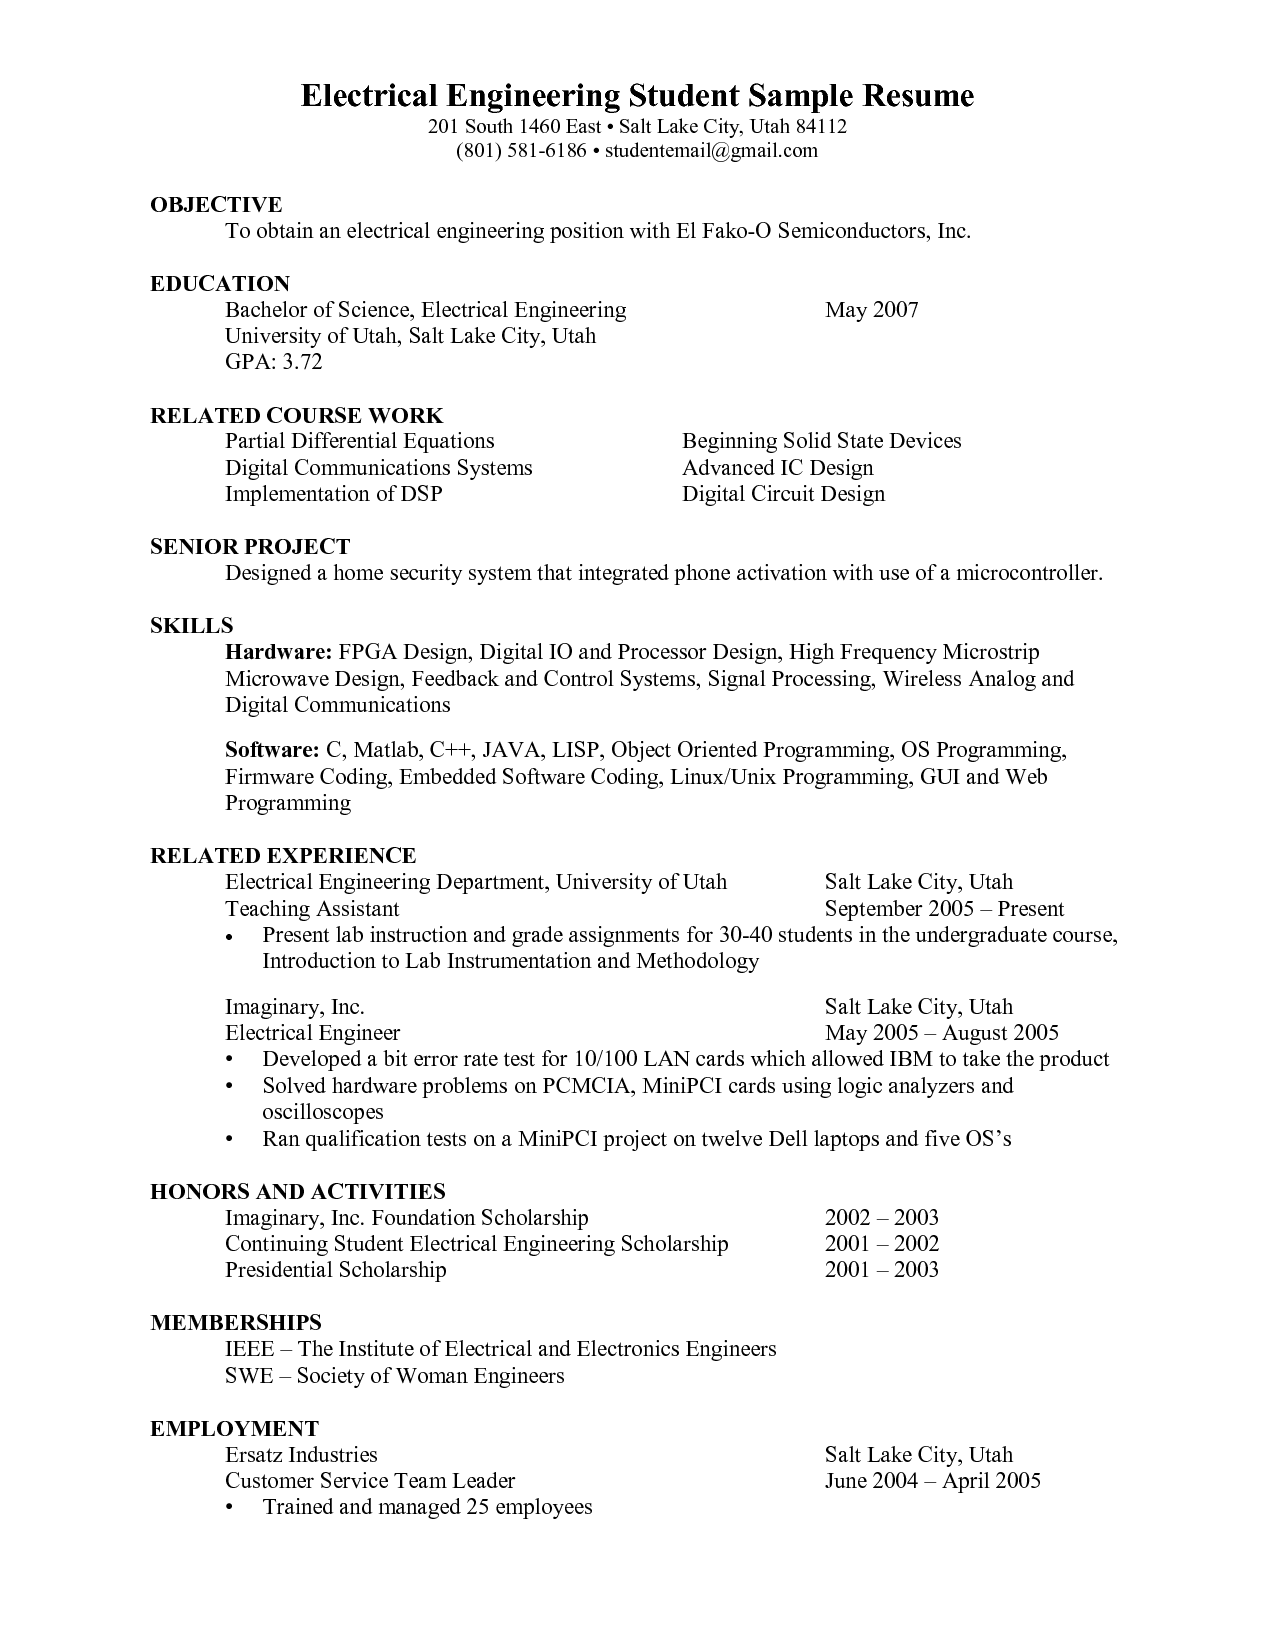 resume Resume Format In Engineering Student resume examples for electronics engineering students httpwww resumecareer info